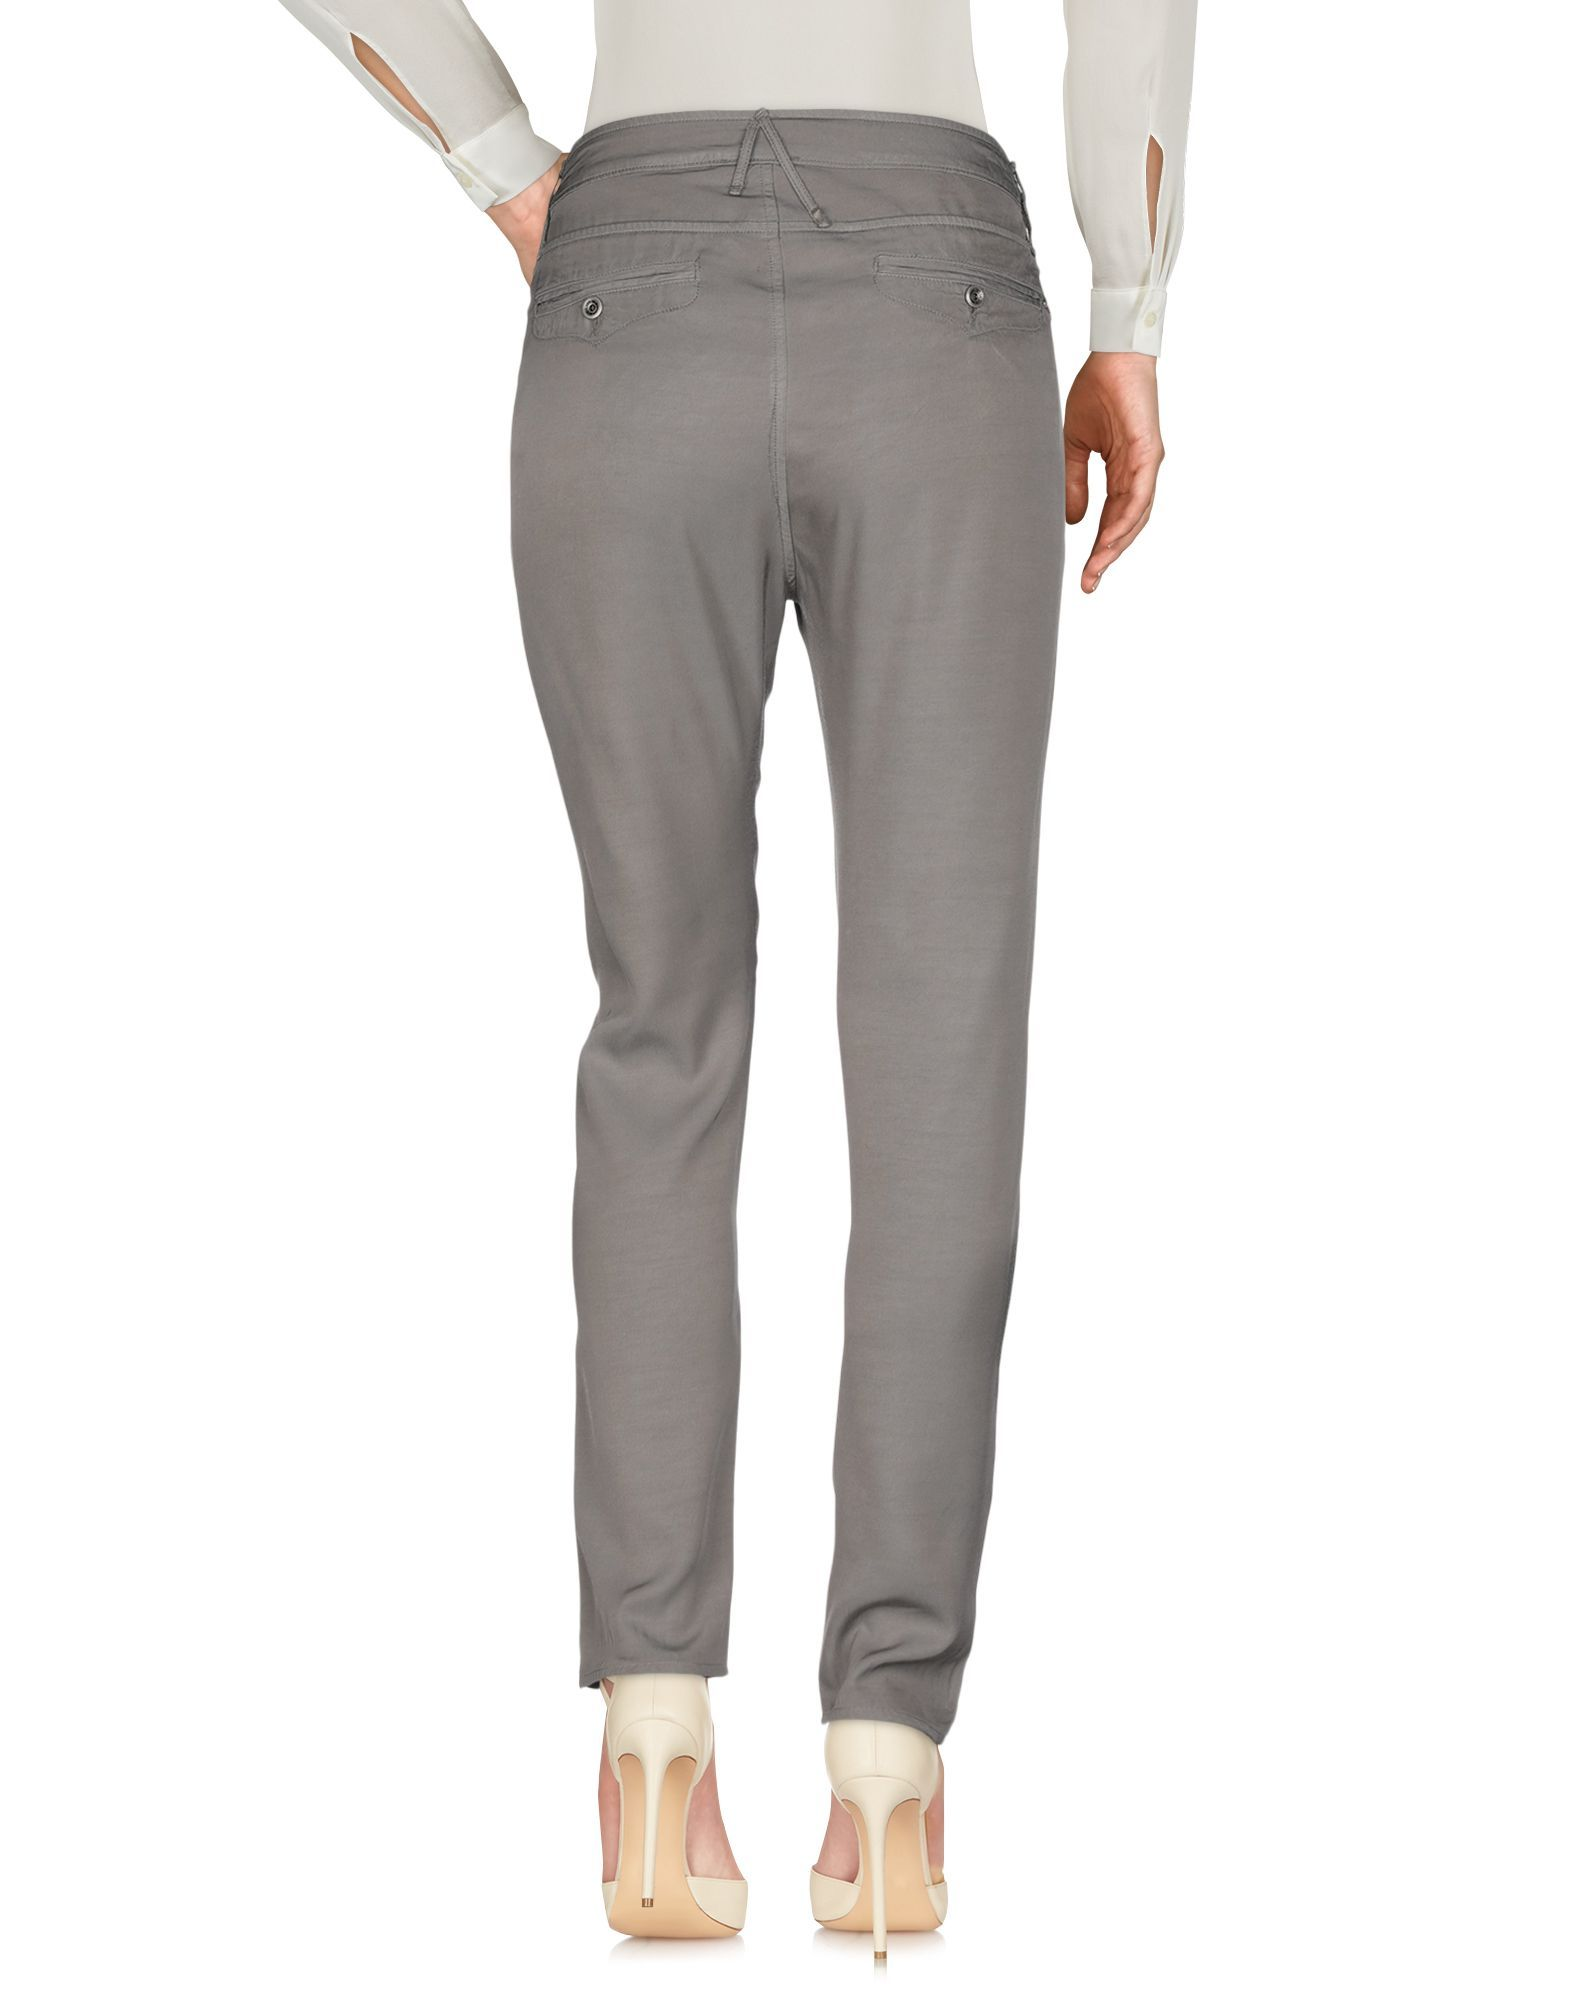 Trousers Women's Cycle Grey Viscose